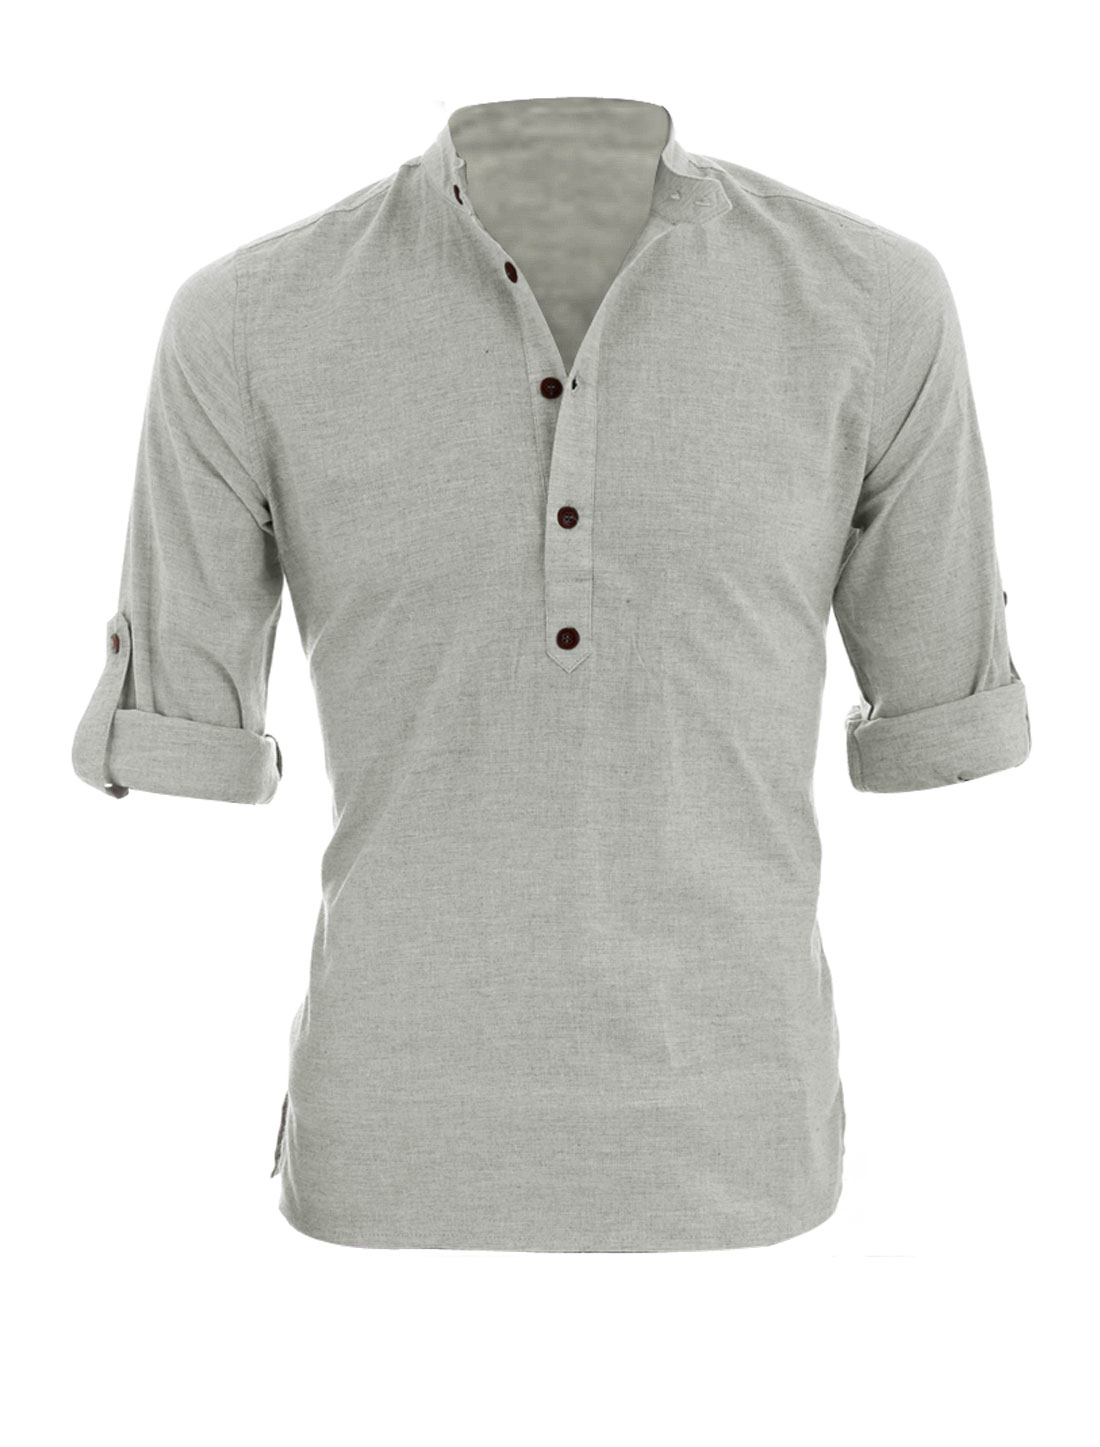 Black t shirt rolled up sleeves - Allegra K Men Half Placket Roll Up Sleeves Heathered Henley Shirt China Mainland